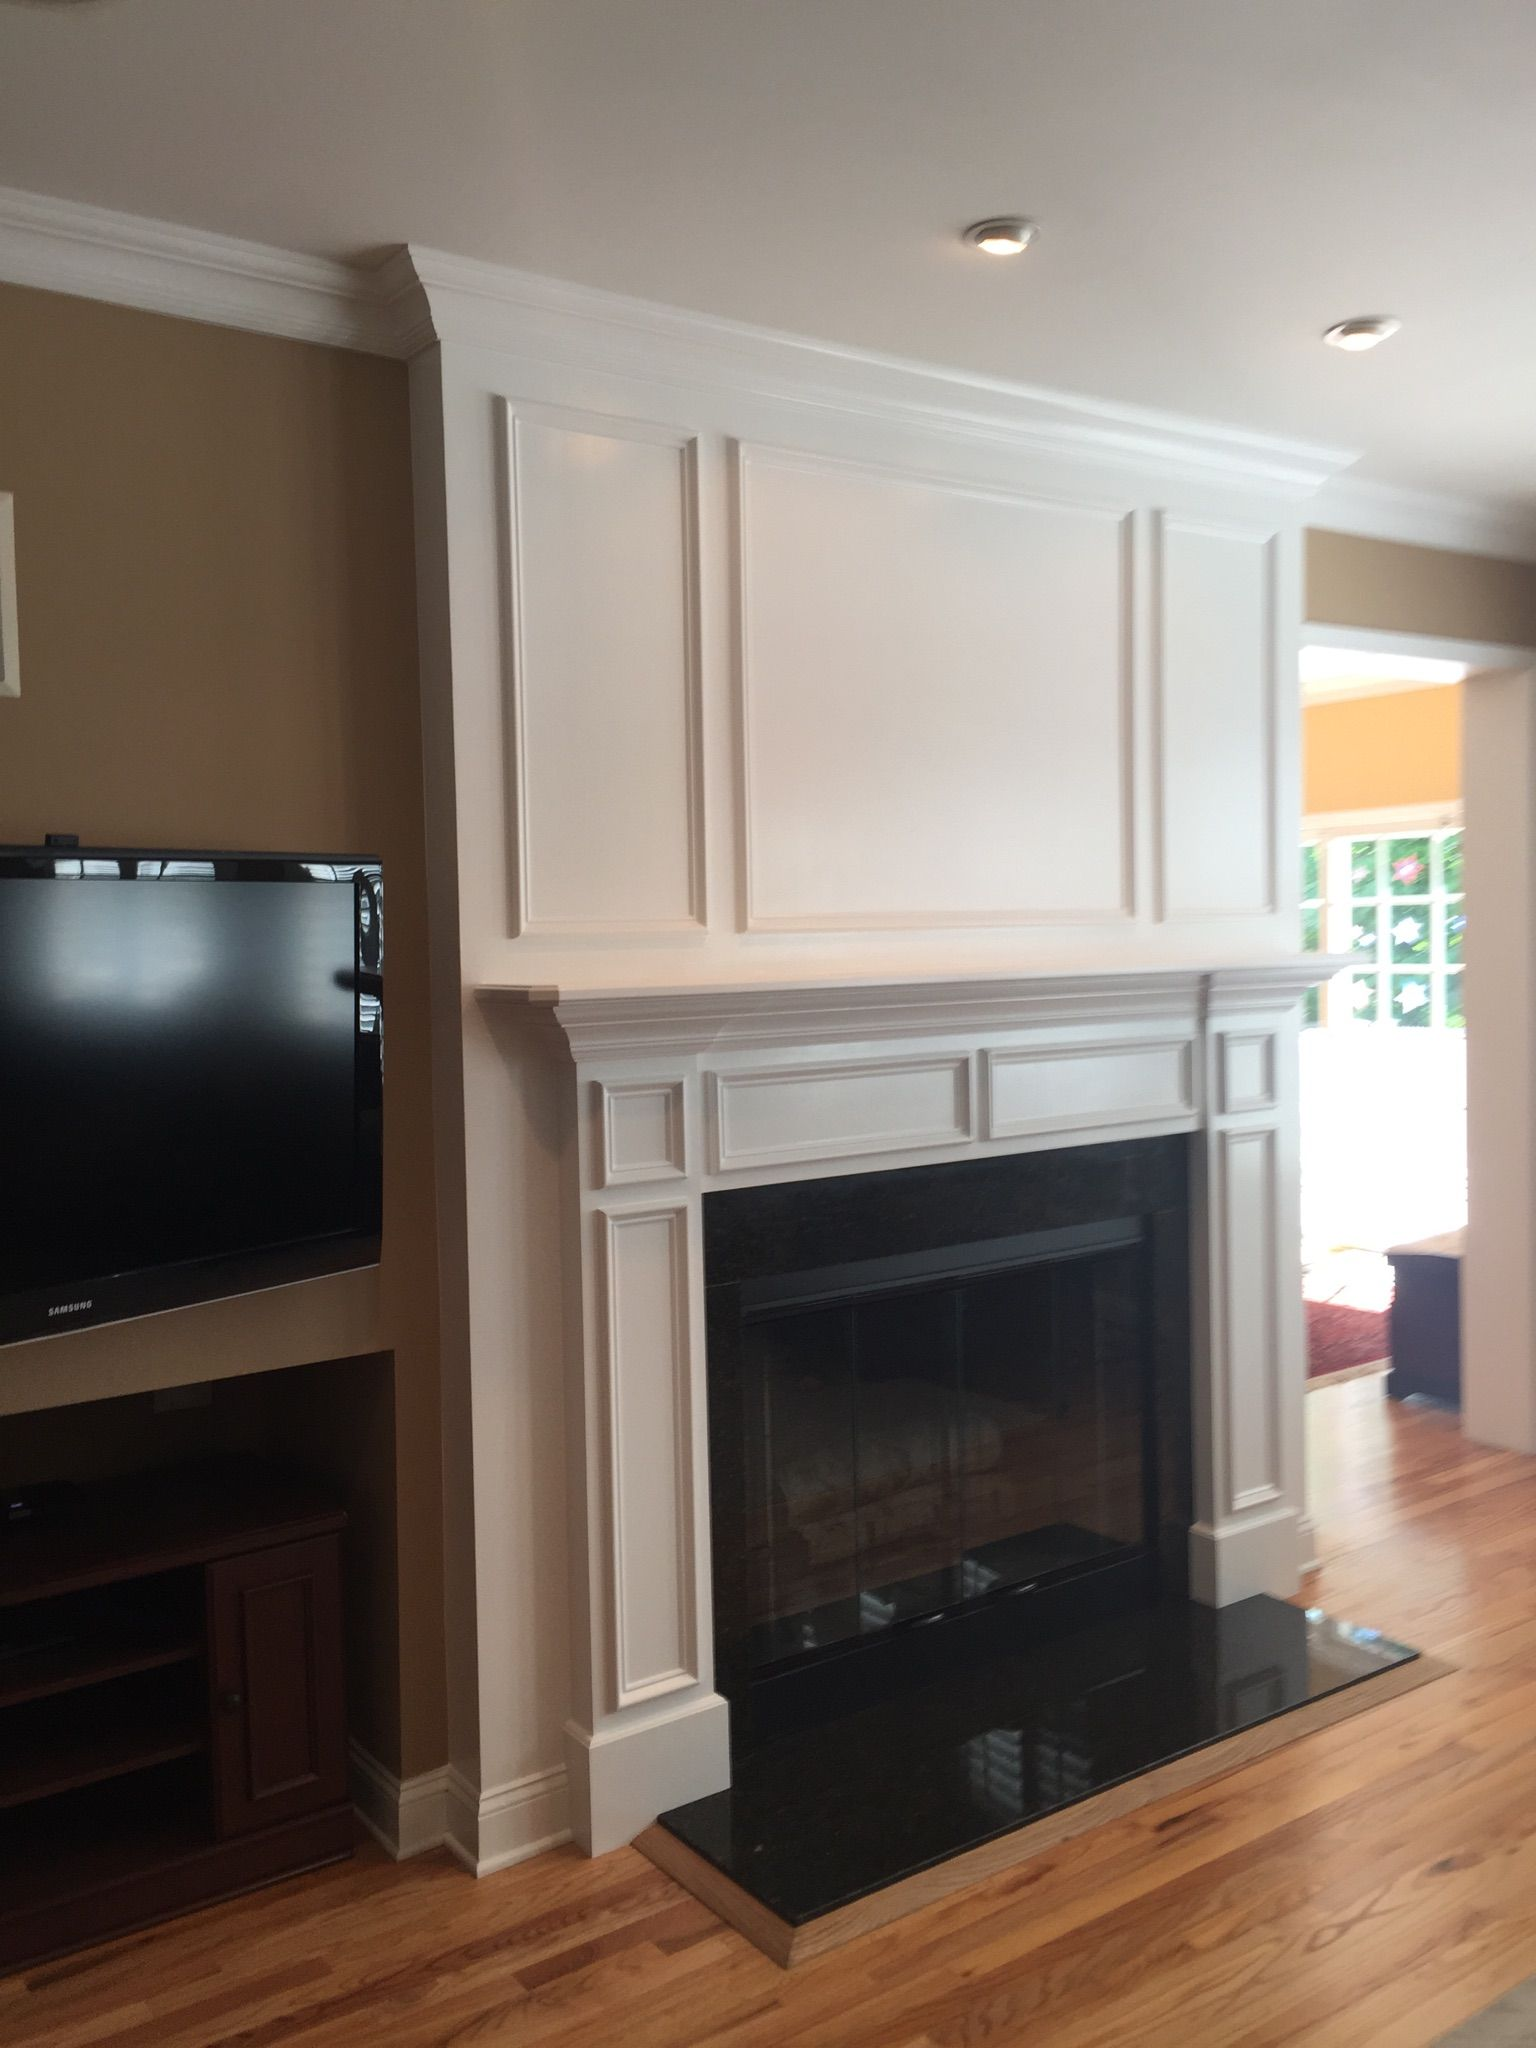 image result for fireplace crown molding fireplace pinterest rh pinterest com crown moulding fireplace crown molding fireplace mantel shelf